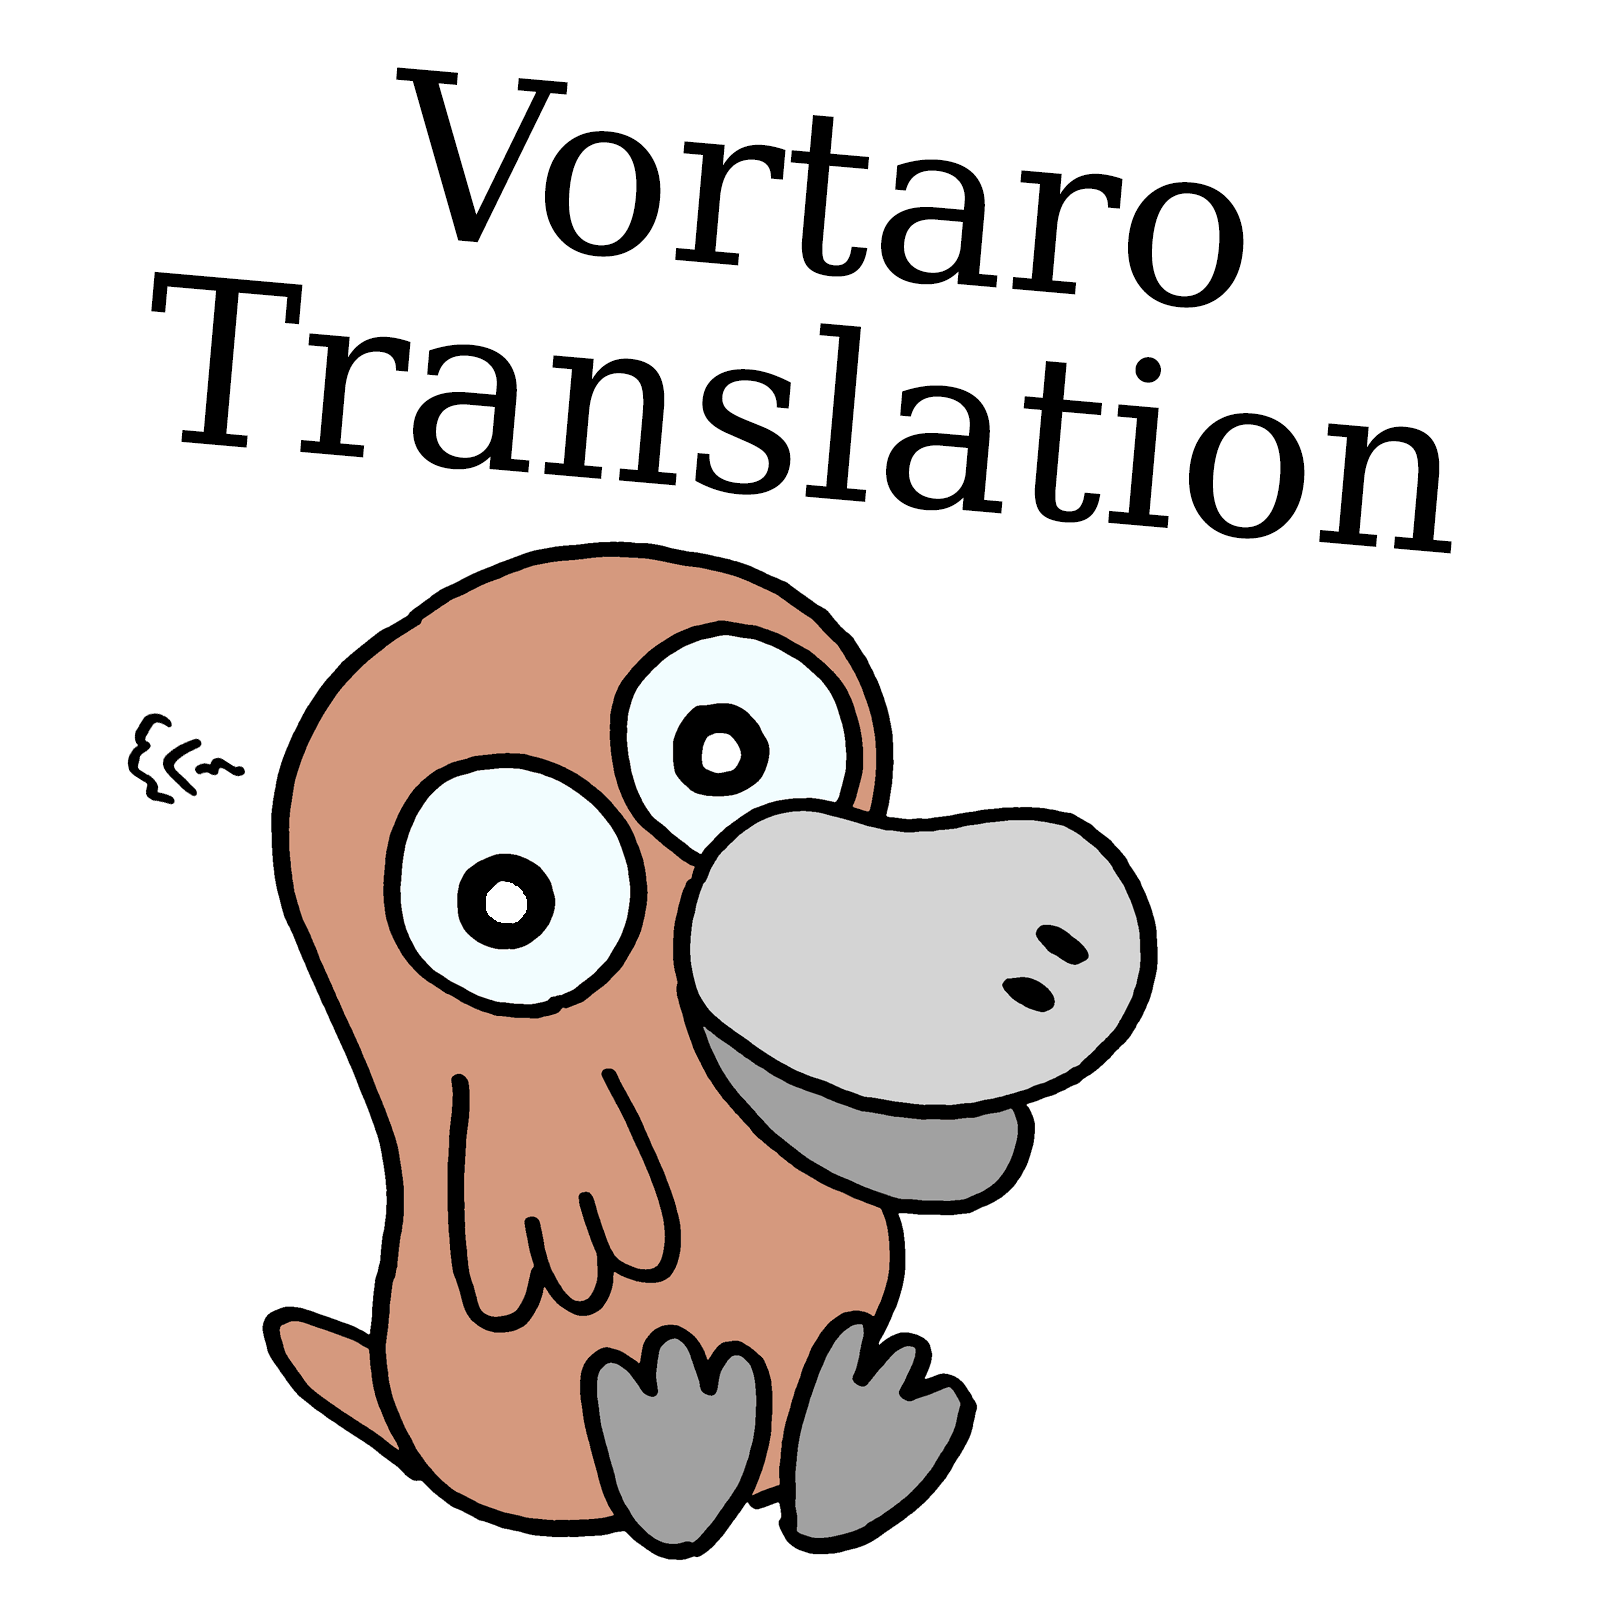 Vortaro Translation